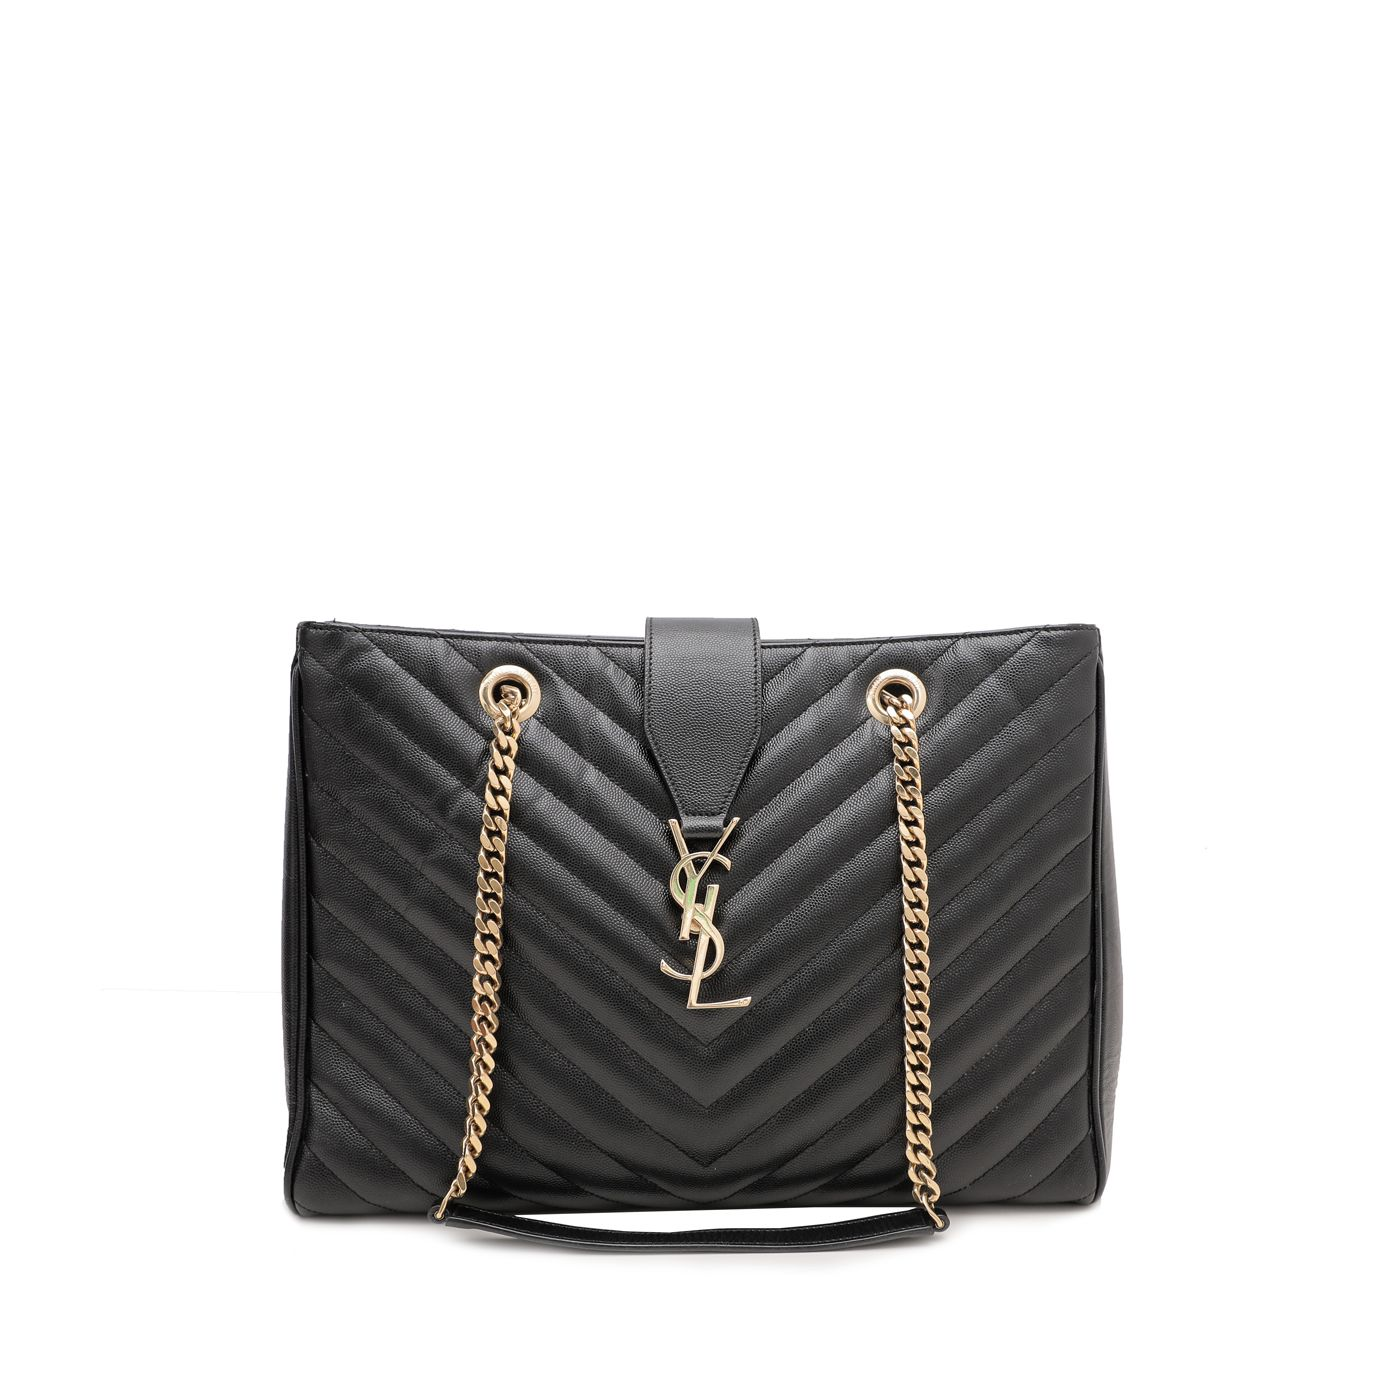 YSl Black Monogram Shopping Bag